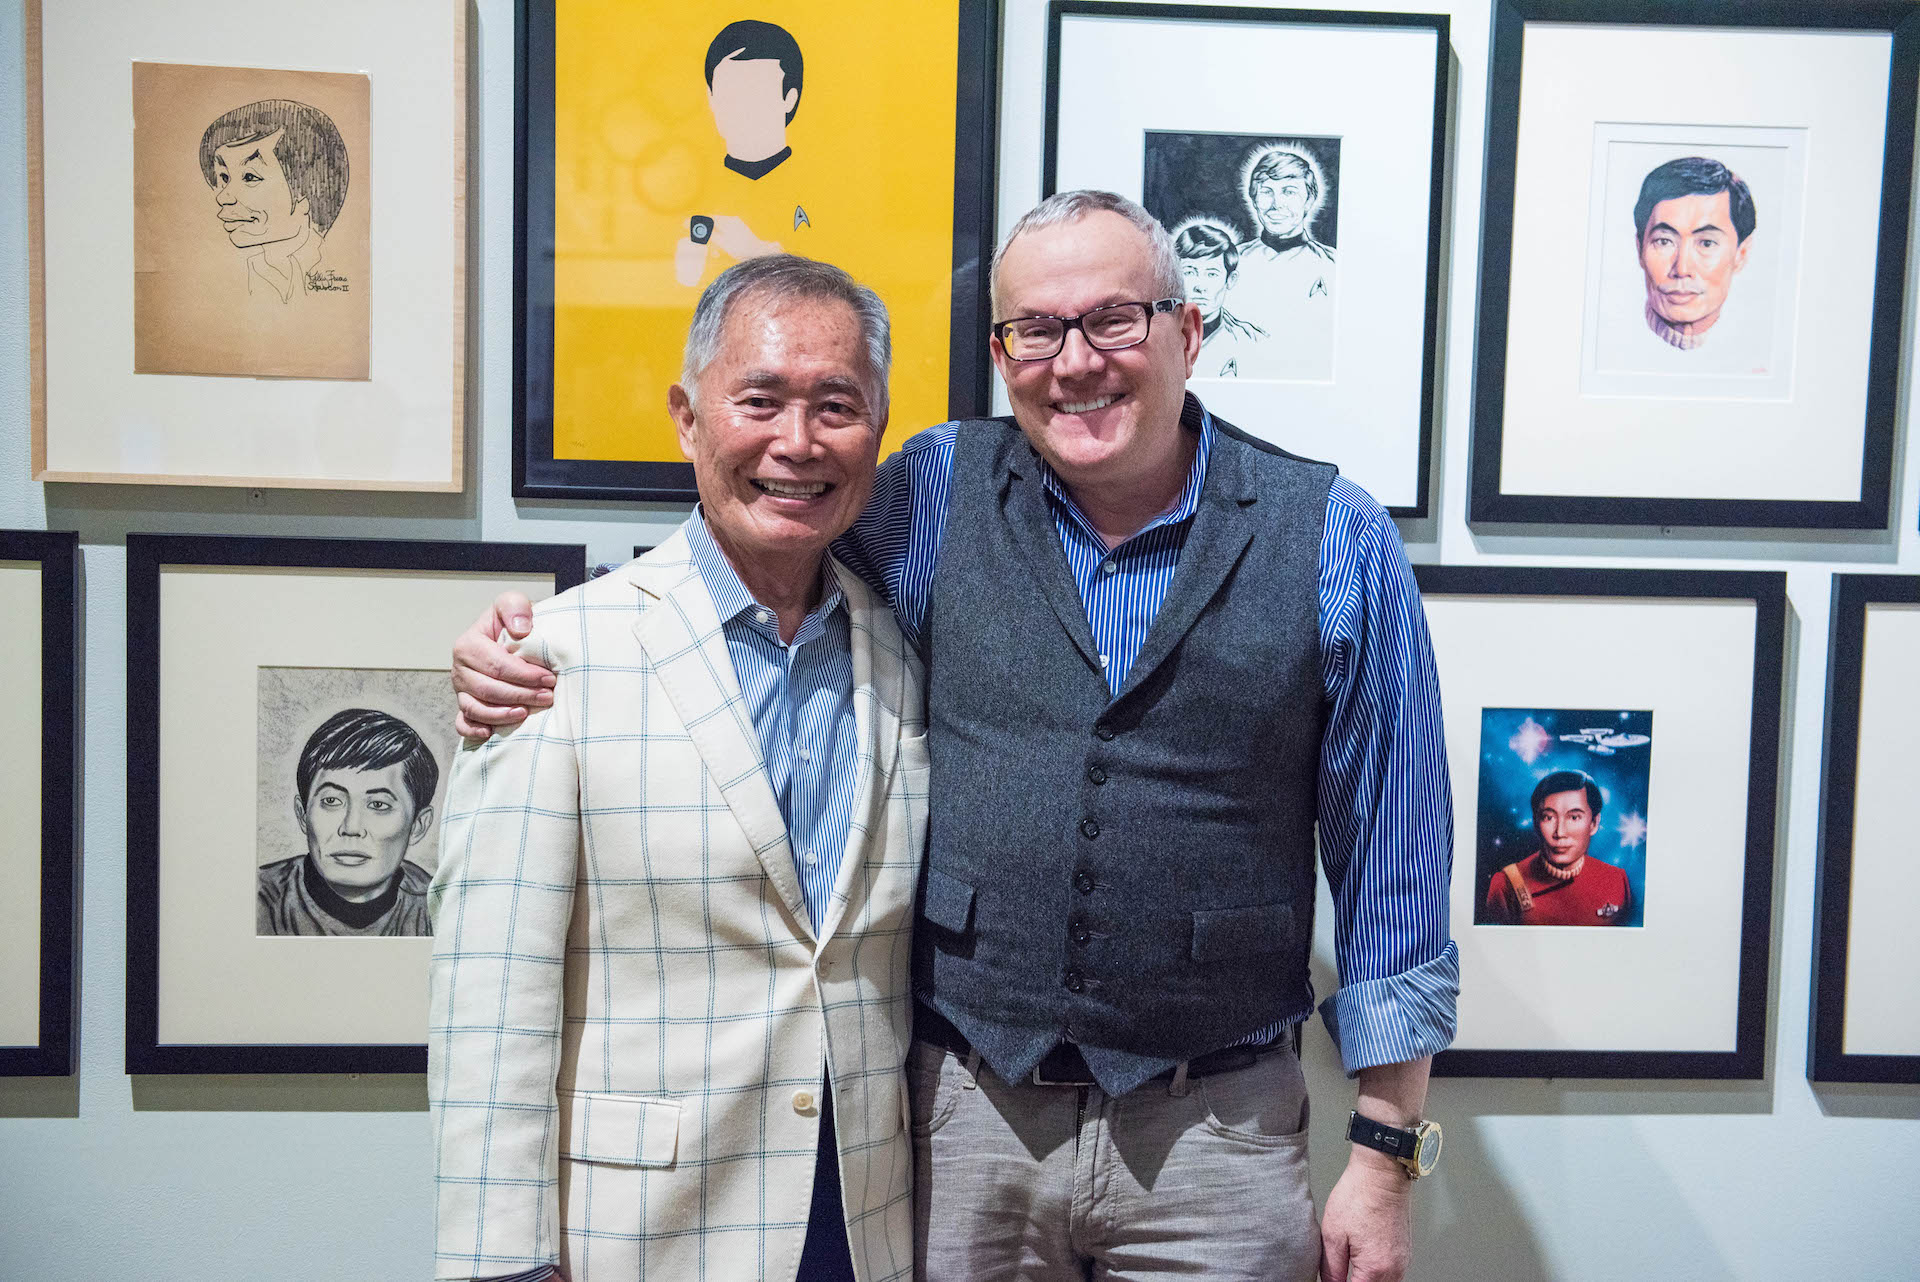 George and Brad Takei grinning in front of fan art.